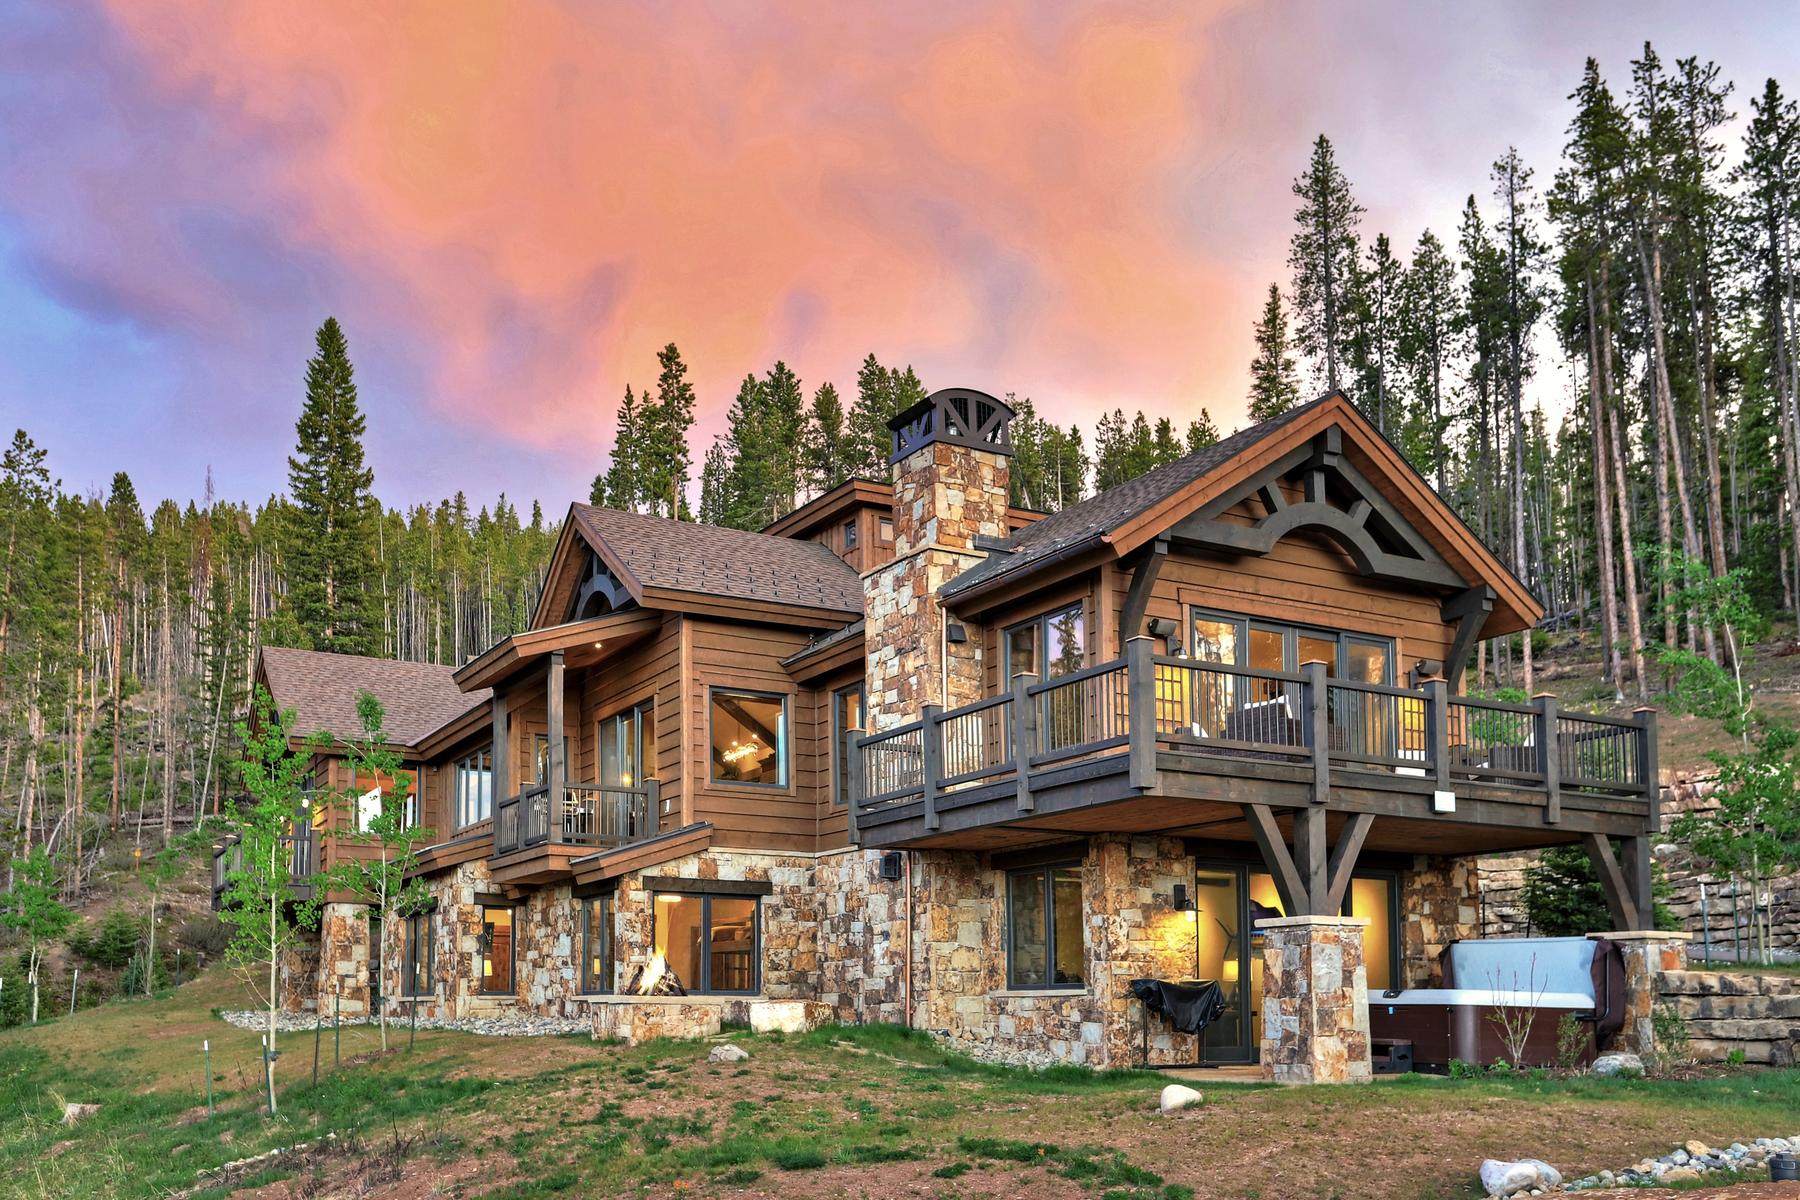 Single Family Home for Active at Custom Mountain Modern Estate 587 Discovery Hill Drive Breckenridge, Colorado 80424 United States